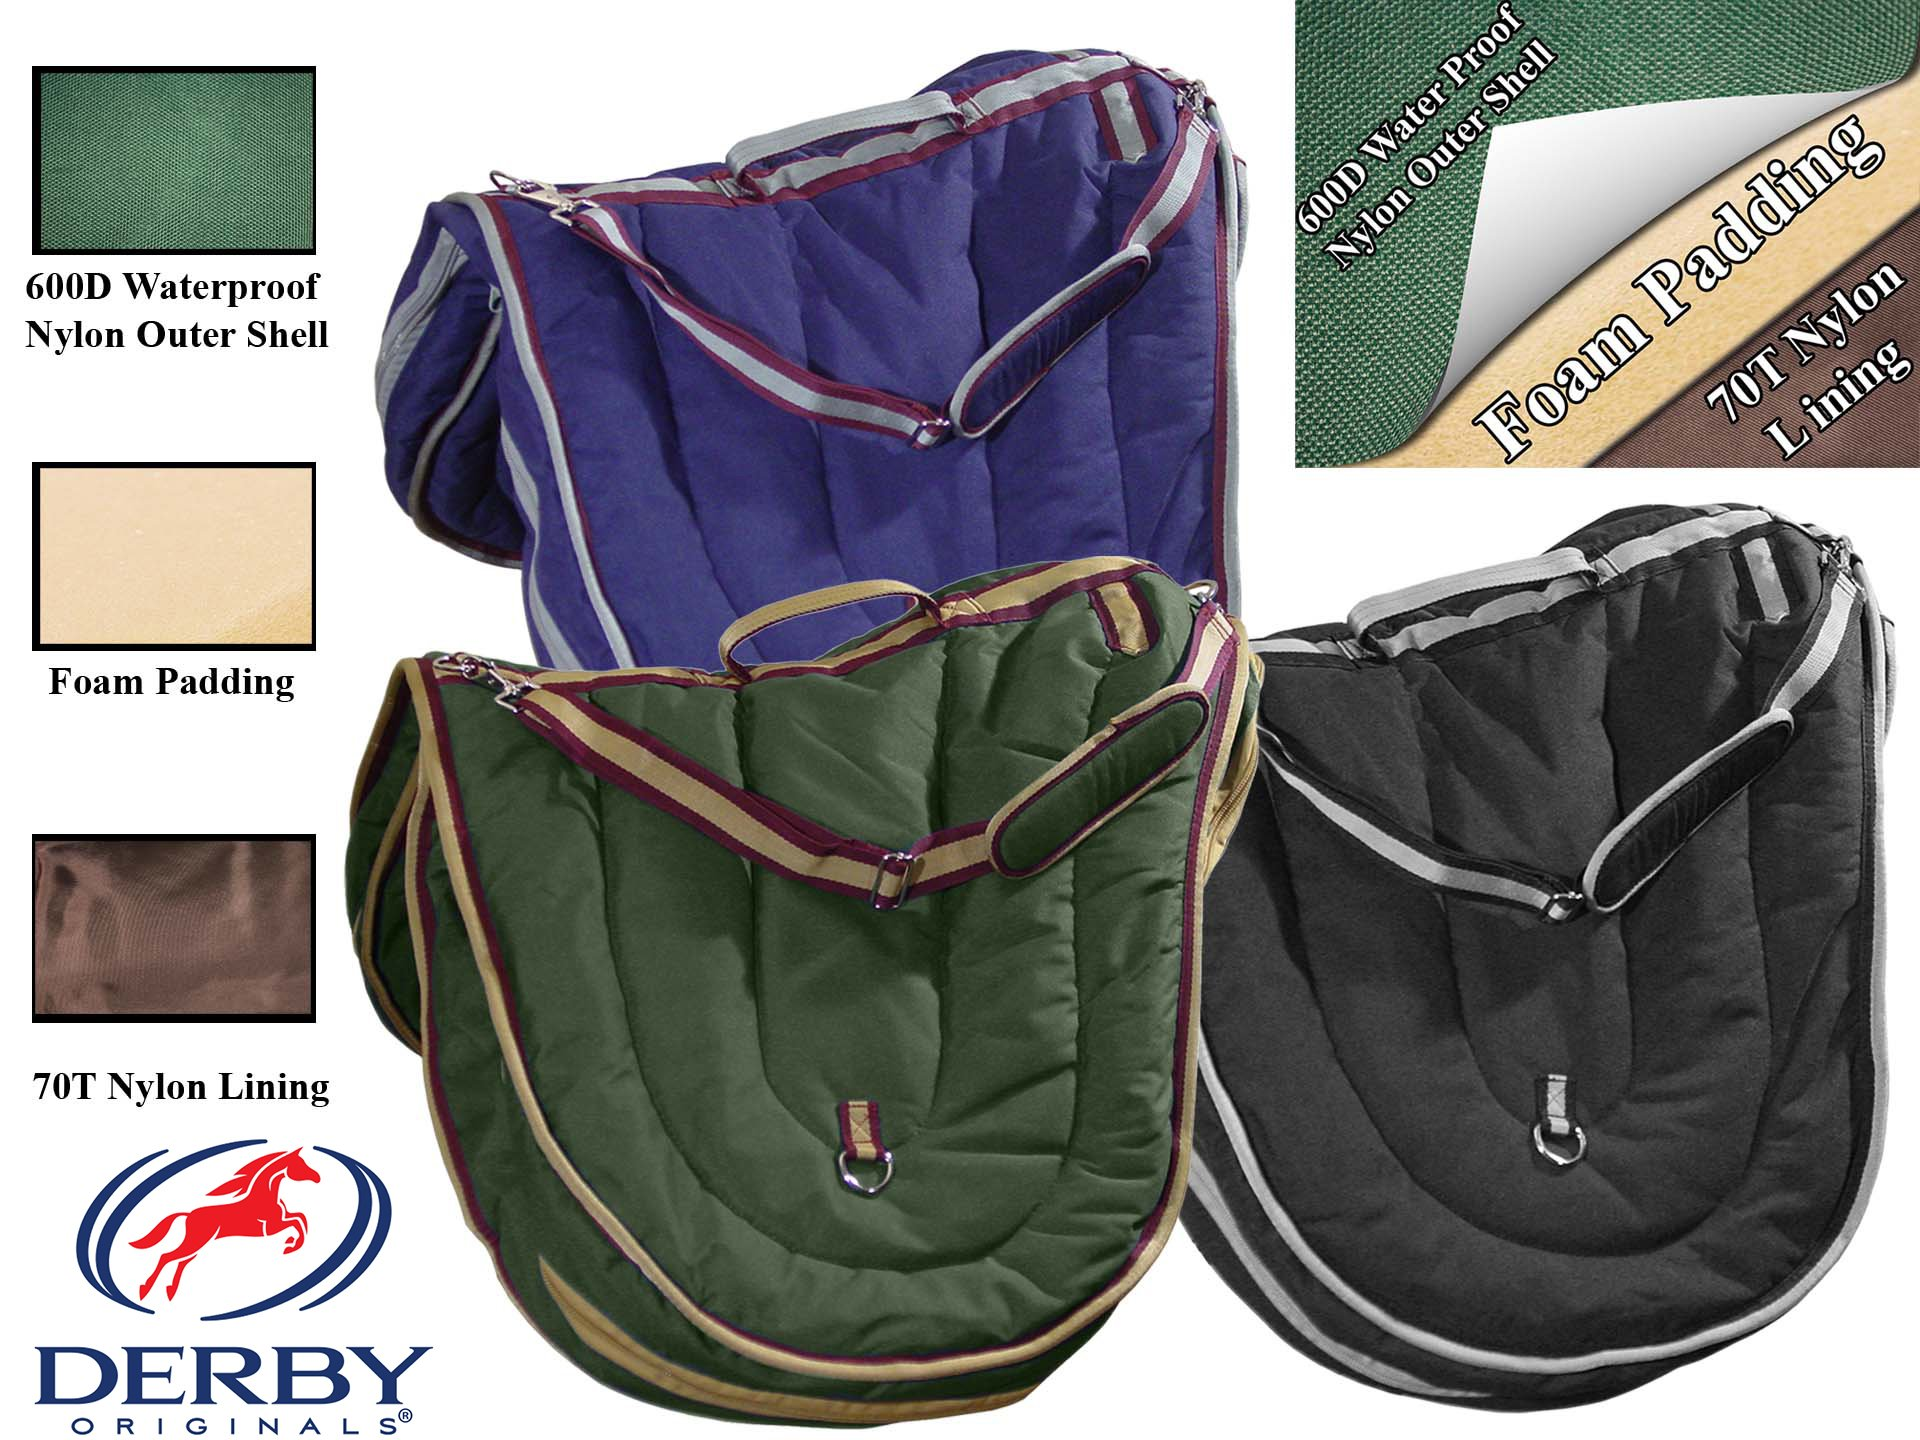 AP English Horse Riding Saddle Carry Bag Case 3 Layers Padded Nylon by Derby Originals at Wholesale Price by Derby Originals